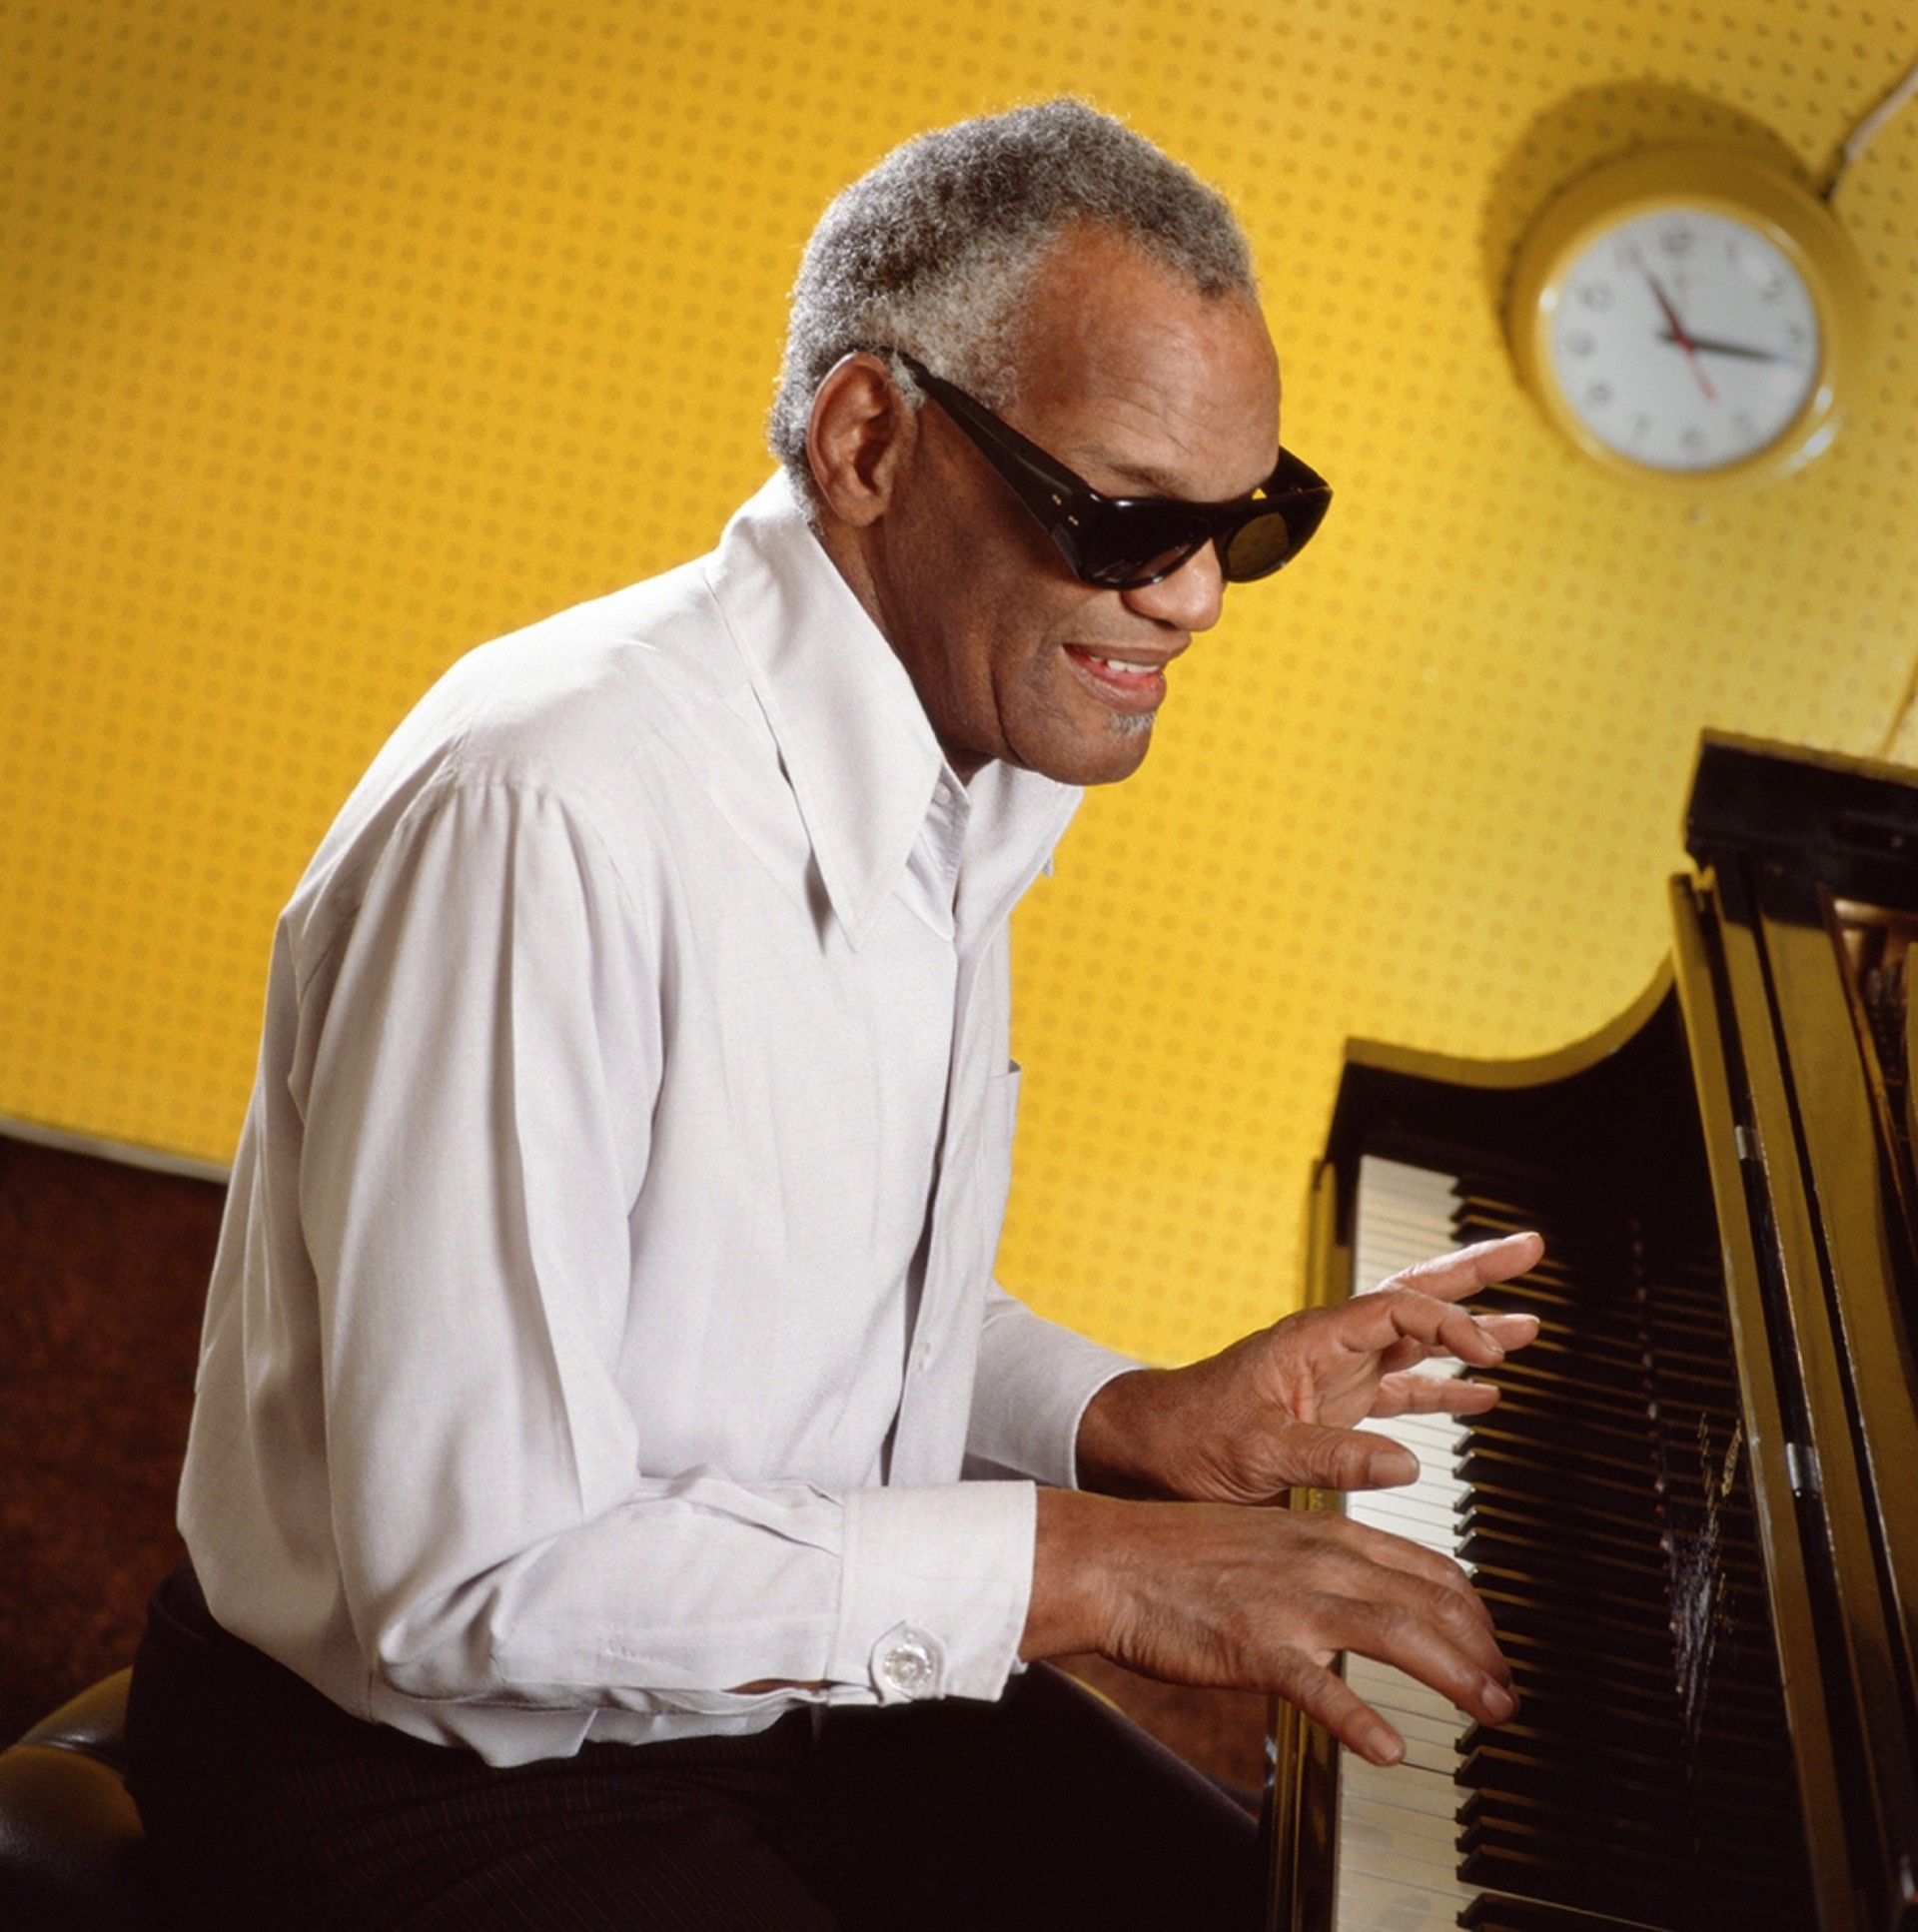 88097 Ray Charles Playing Piano Against Yellow Color by Timothy White